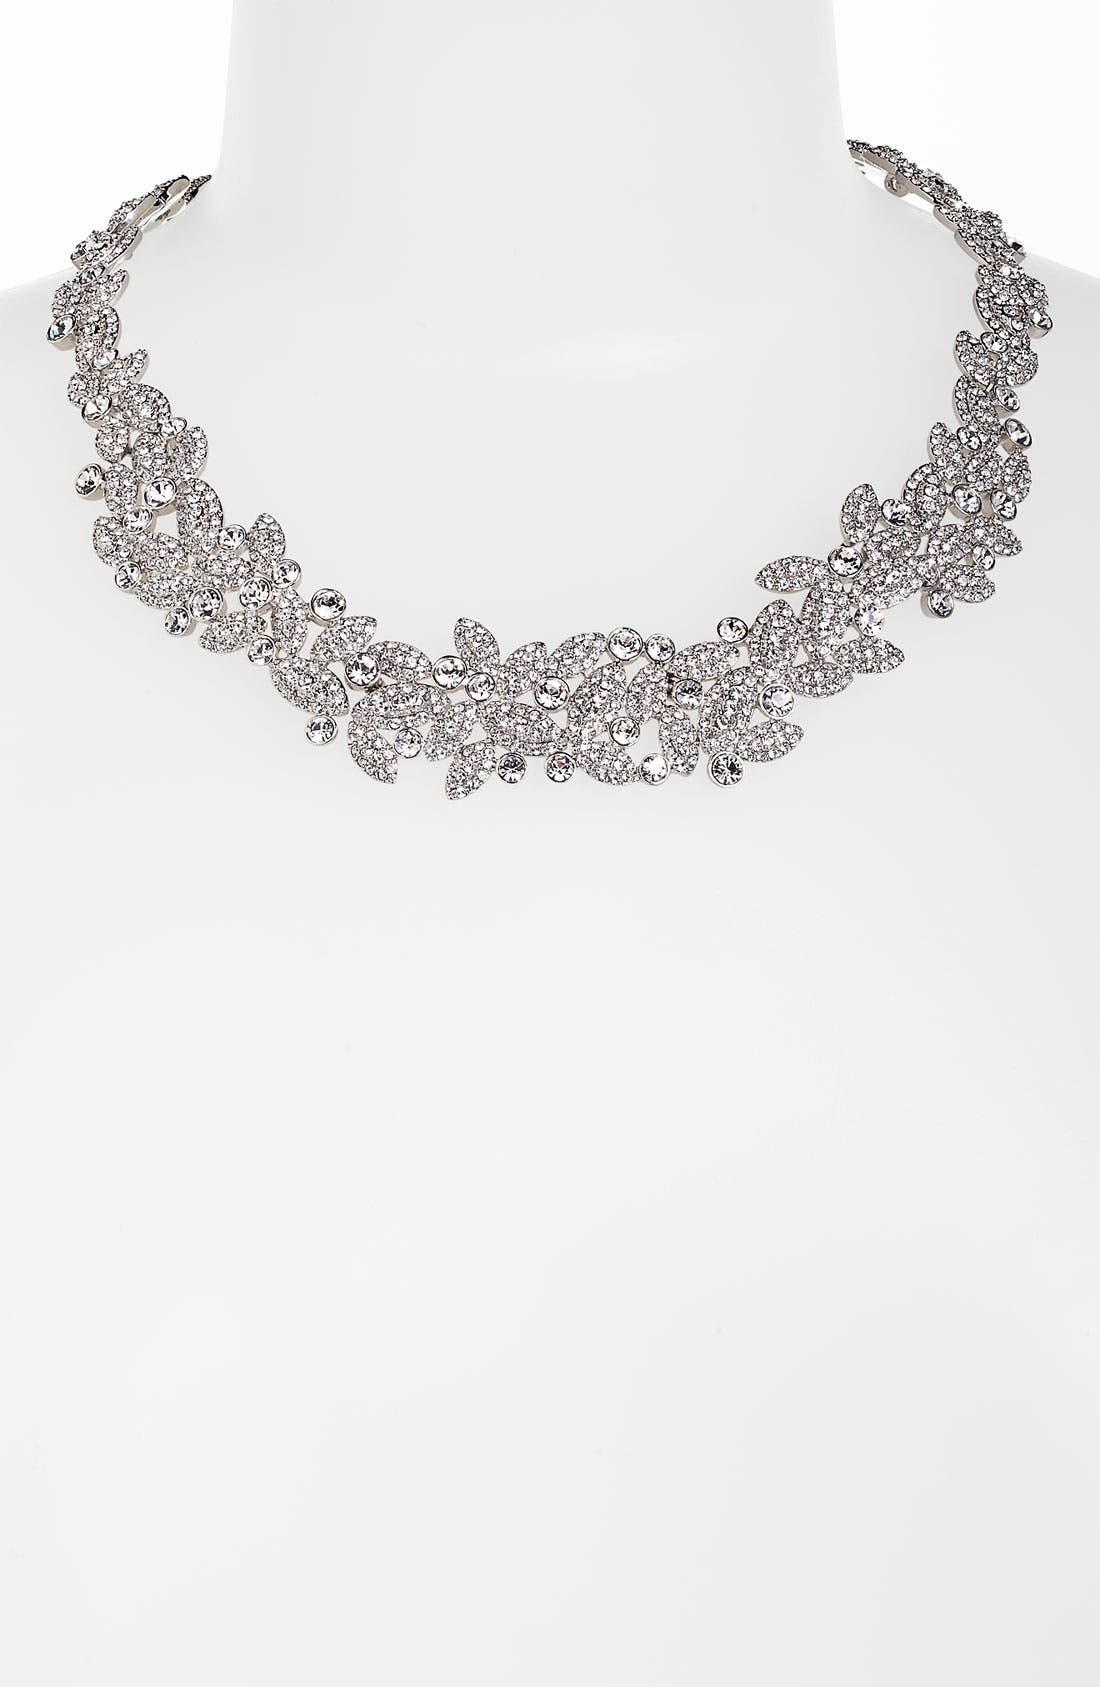 Main Image - Givenchy 'Femme - Kelly' Crystal Collar Necklace